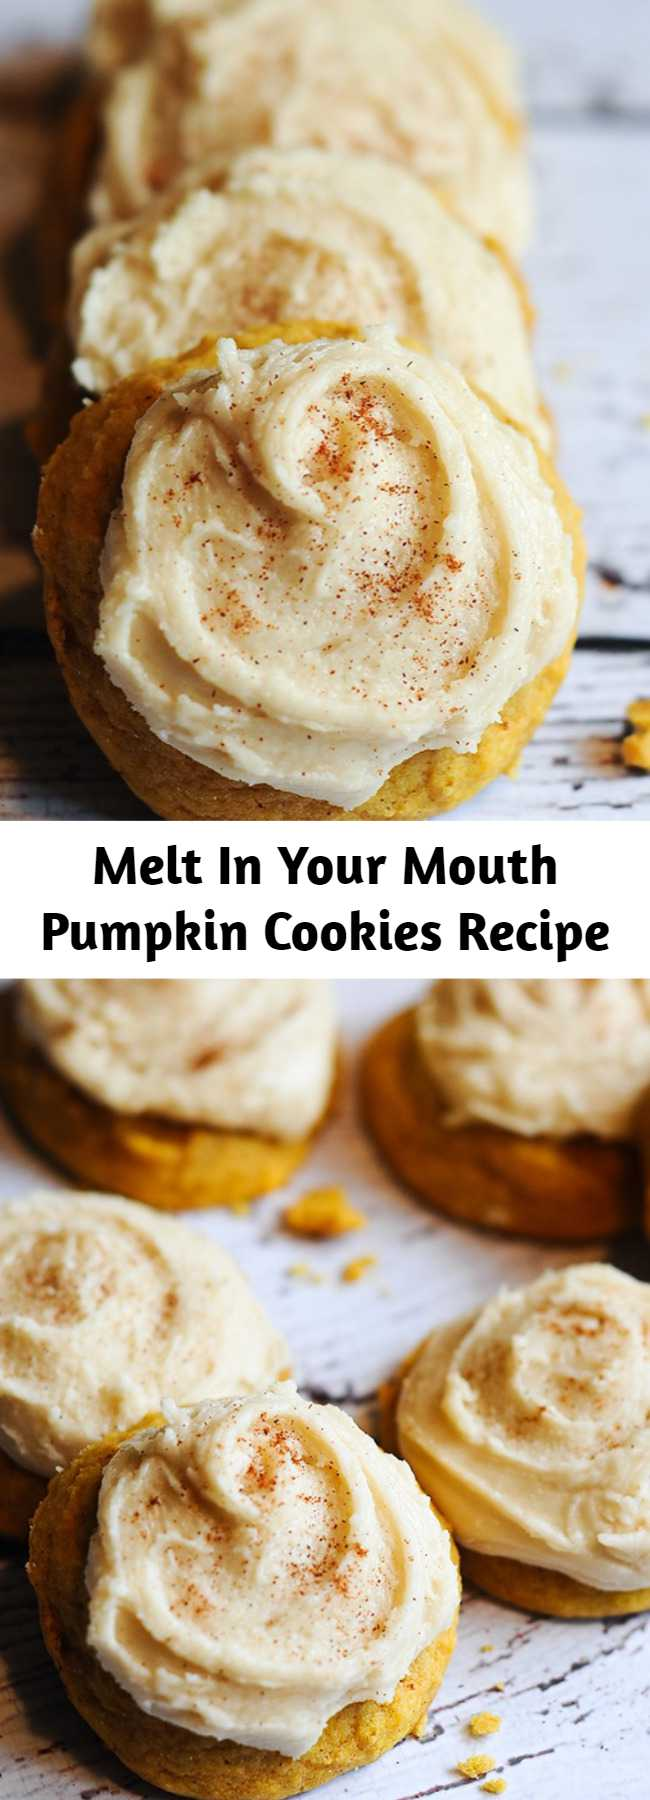 Melt In Your Mouth Pumpkin Cookies Recipe - I just made these cookies and they are AMAZING. Perfect pumpkin recipe and perfect pumpkin cookies. Pin this dessert now and make it this fall! If you're ready to get your pumpkin fix or you're just pinning great fall pumpkin recipes, you definitely don't want to miss this melt-in-your-mouth pumpkin cookies recipe!